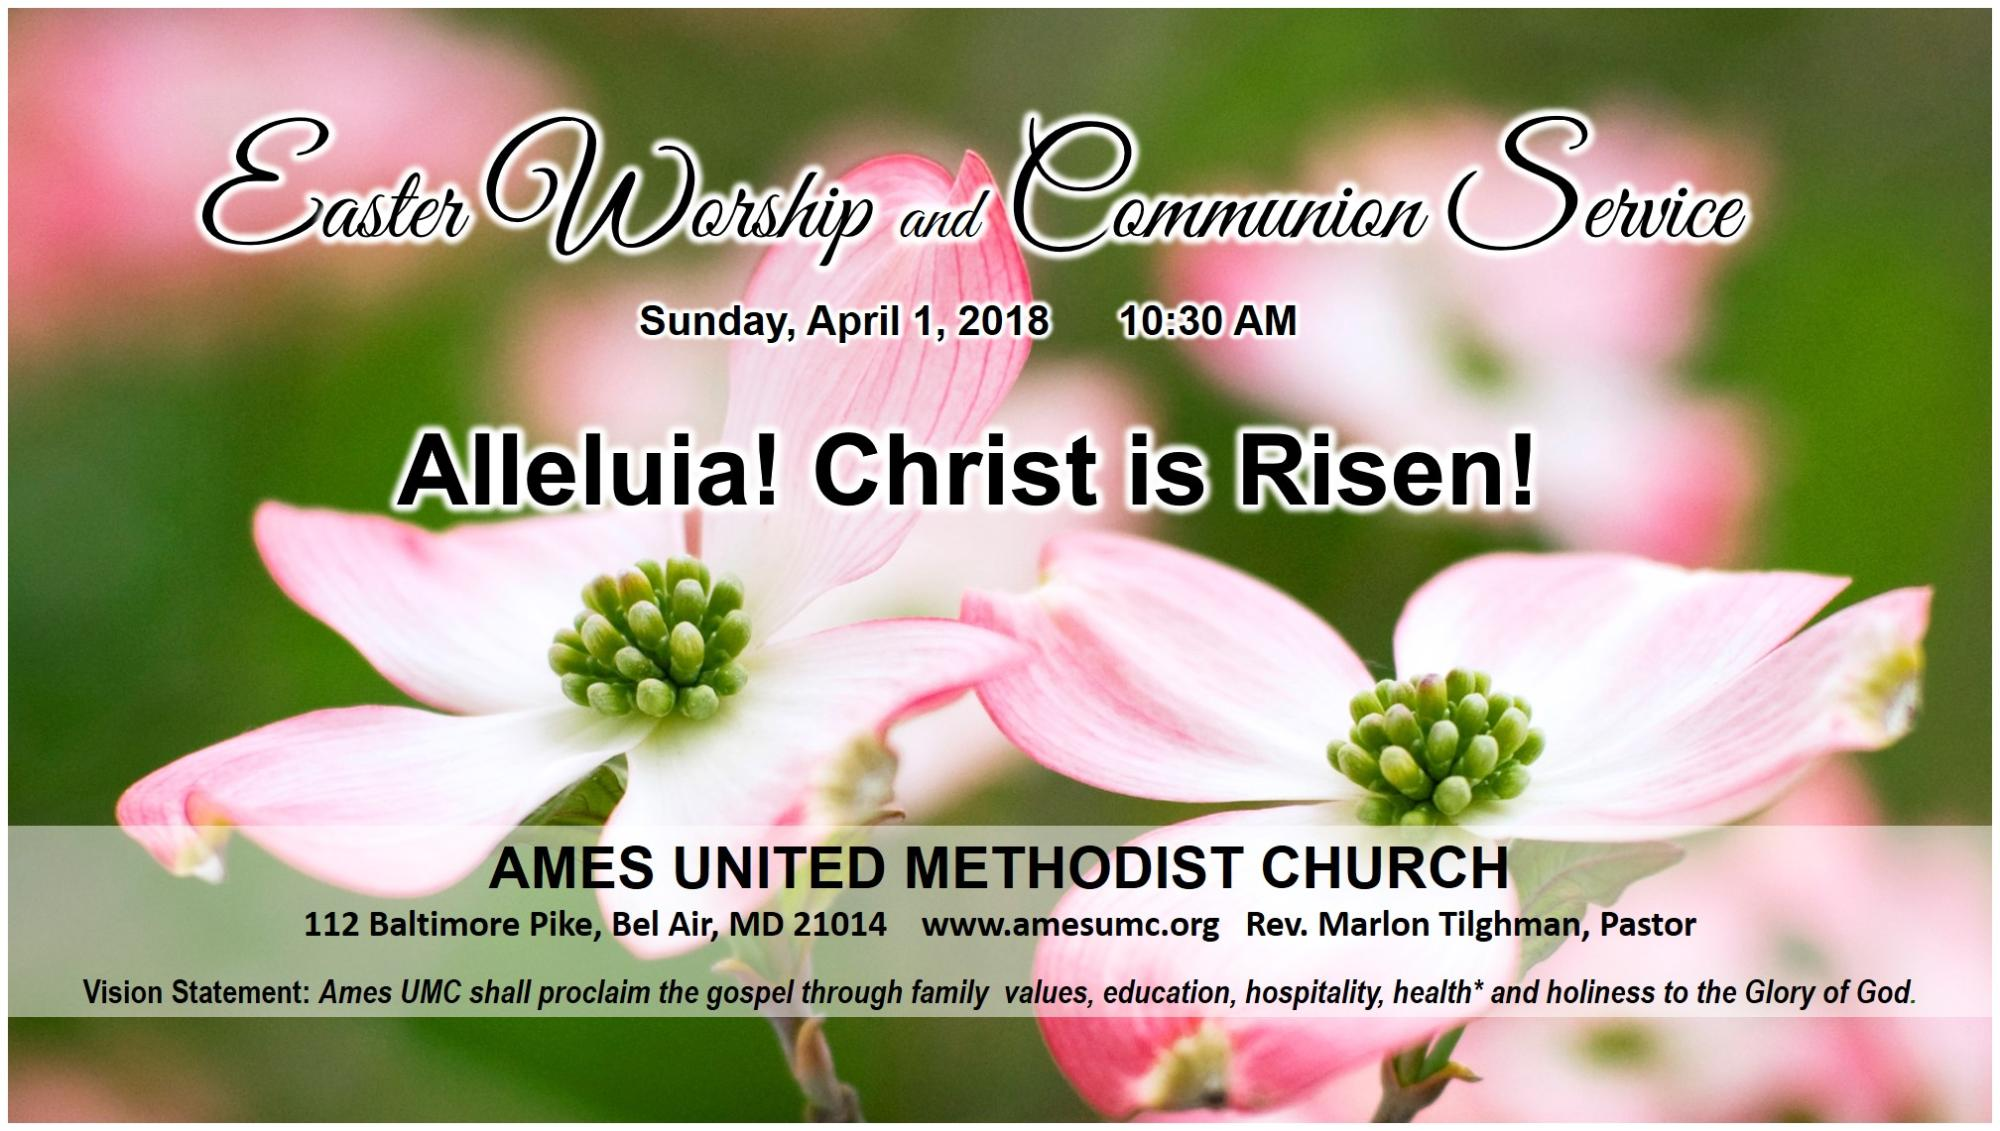 1a-2018_Easter_and_Communion_Service.jpg